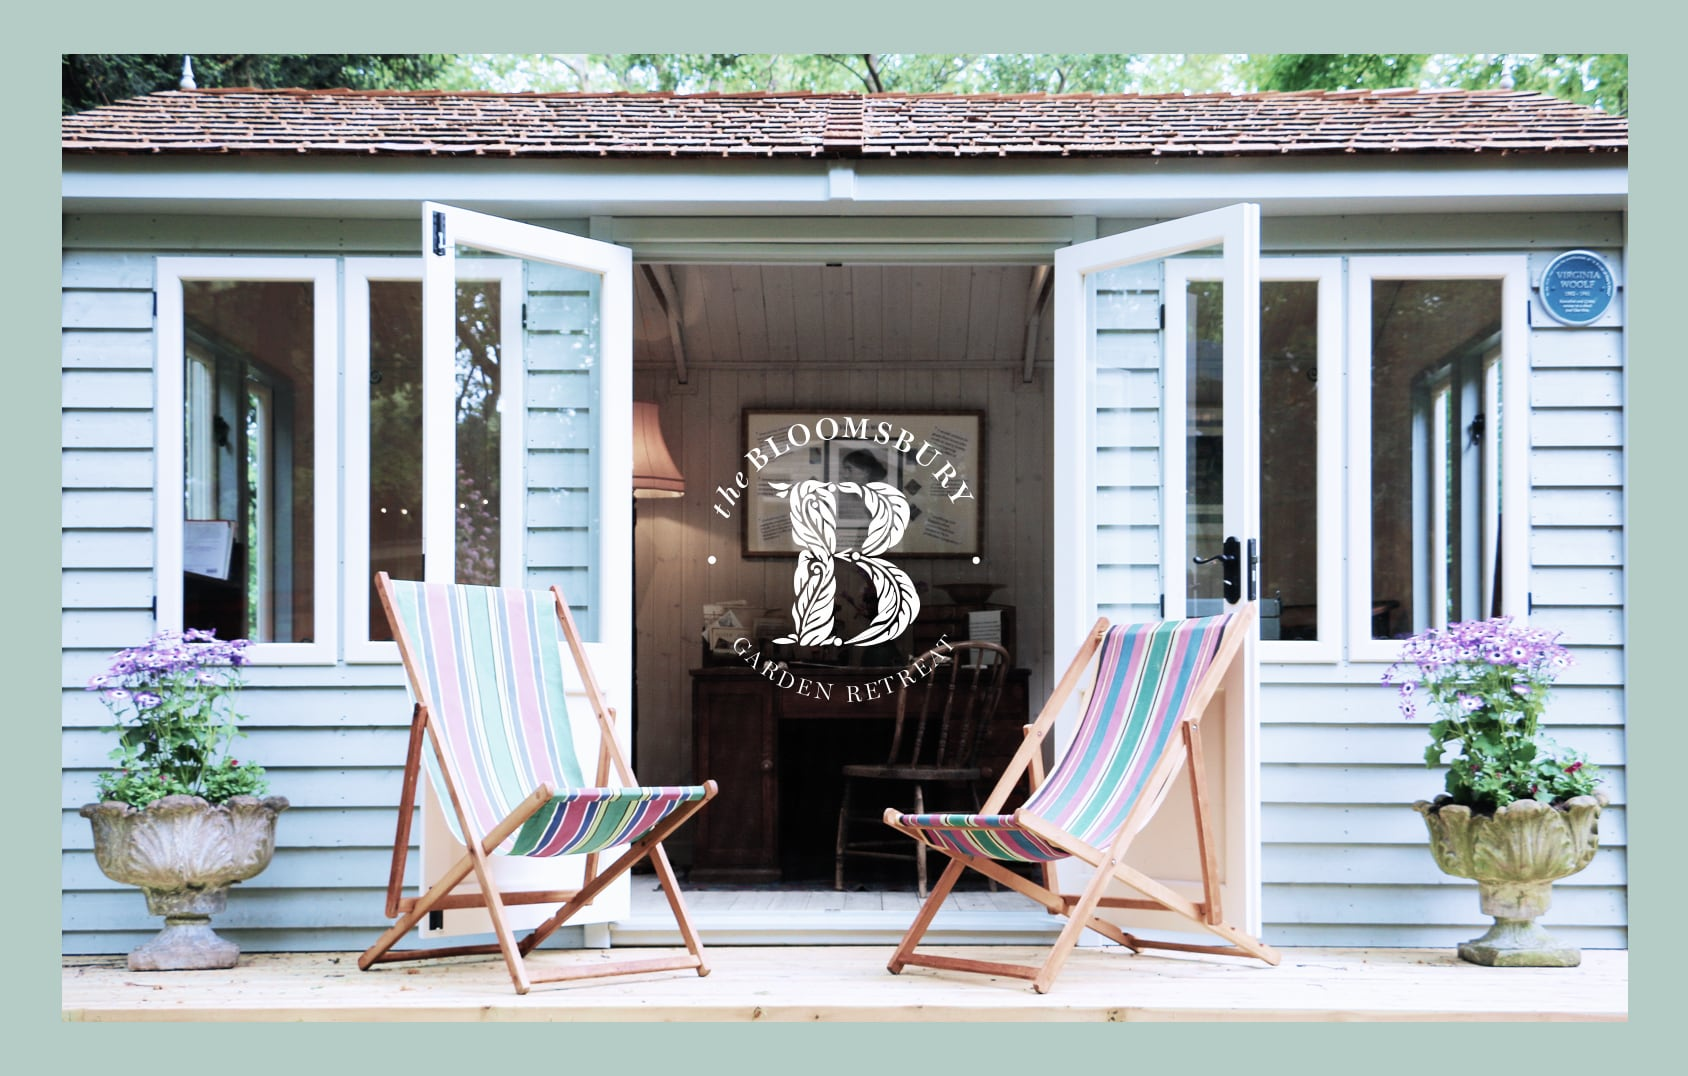 The Bloomsbury writing retreat, exclusive to Malvern Garden Buildings